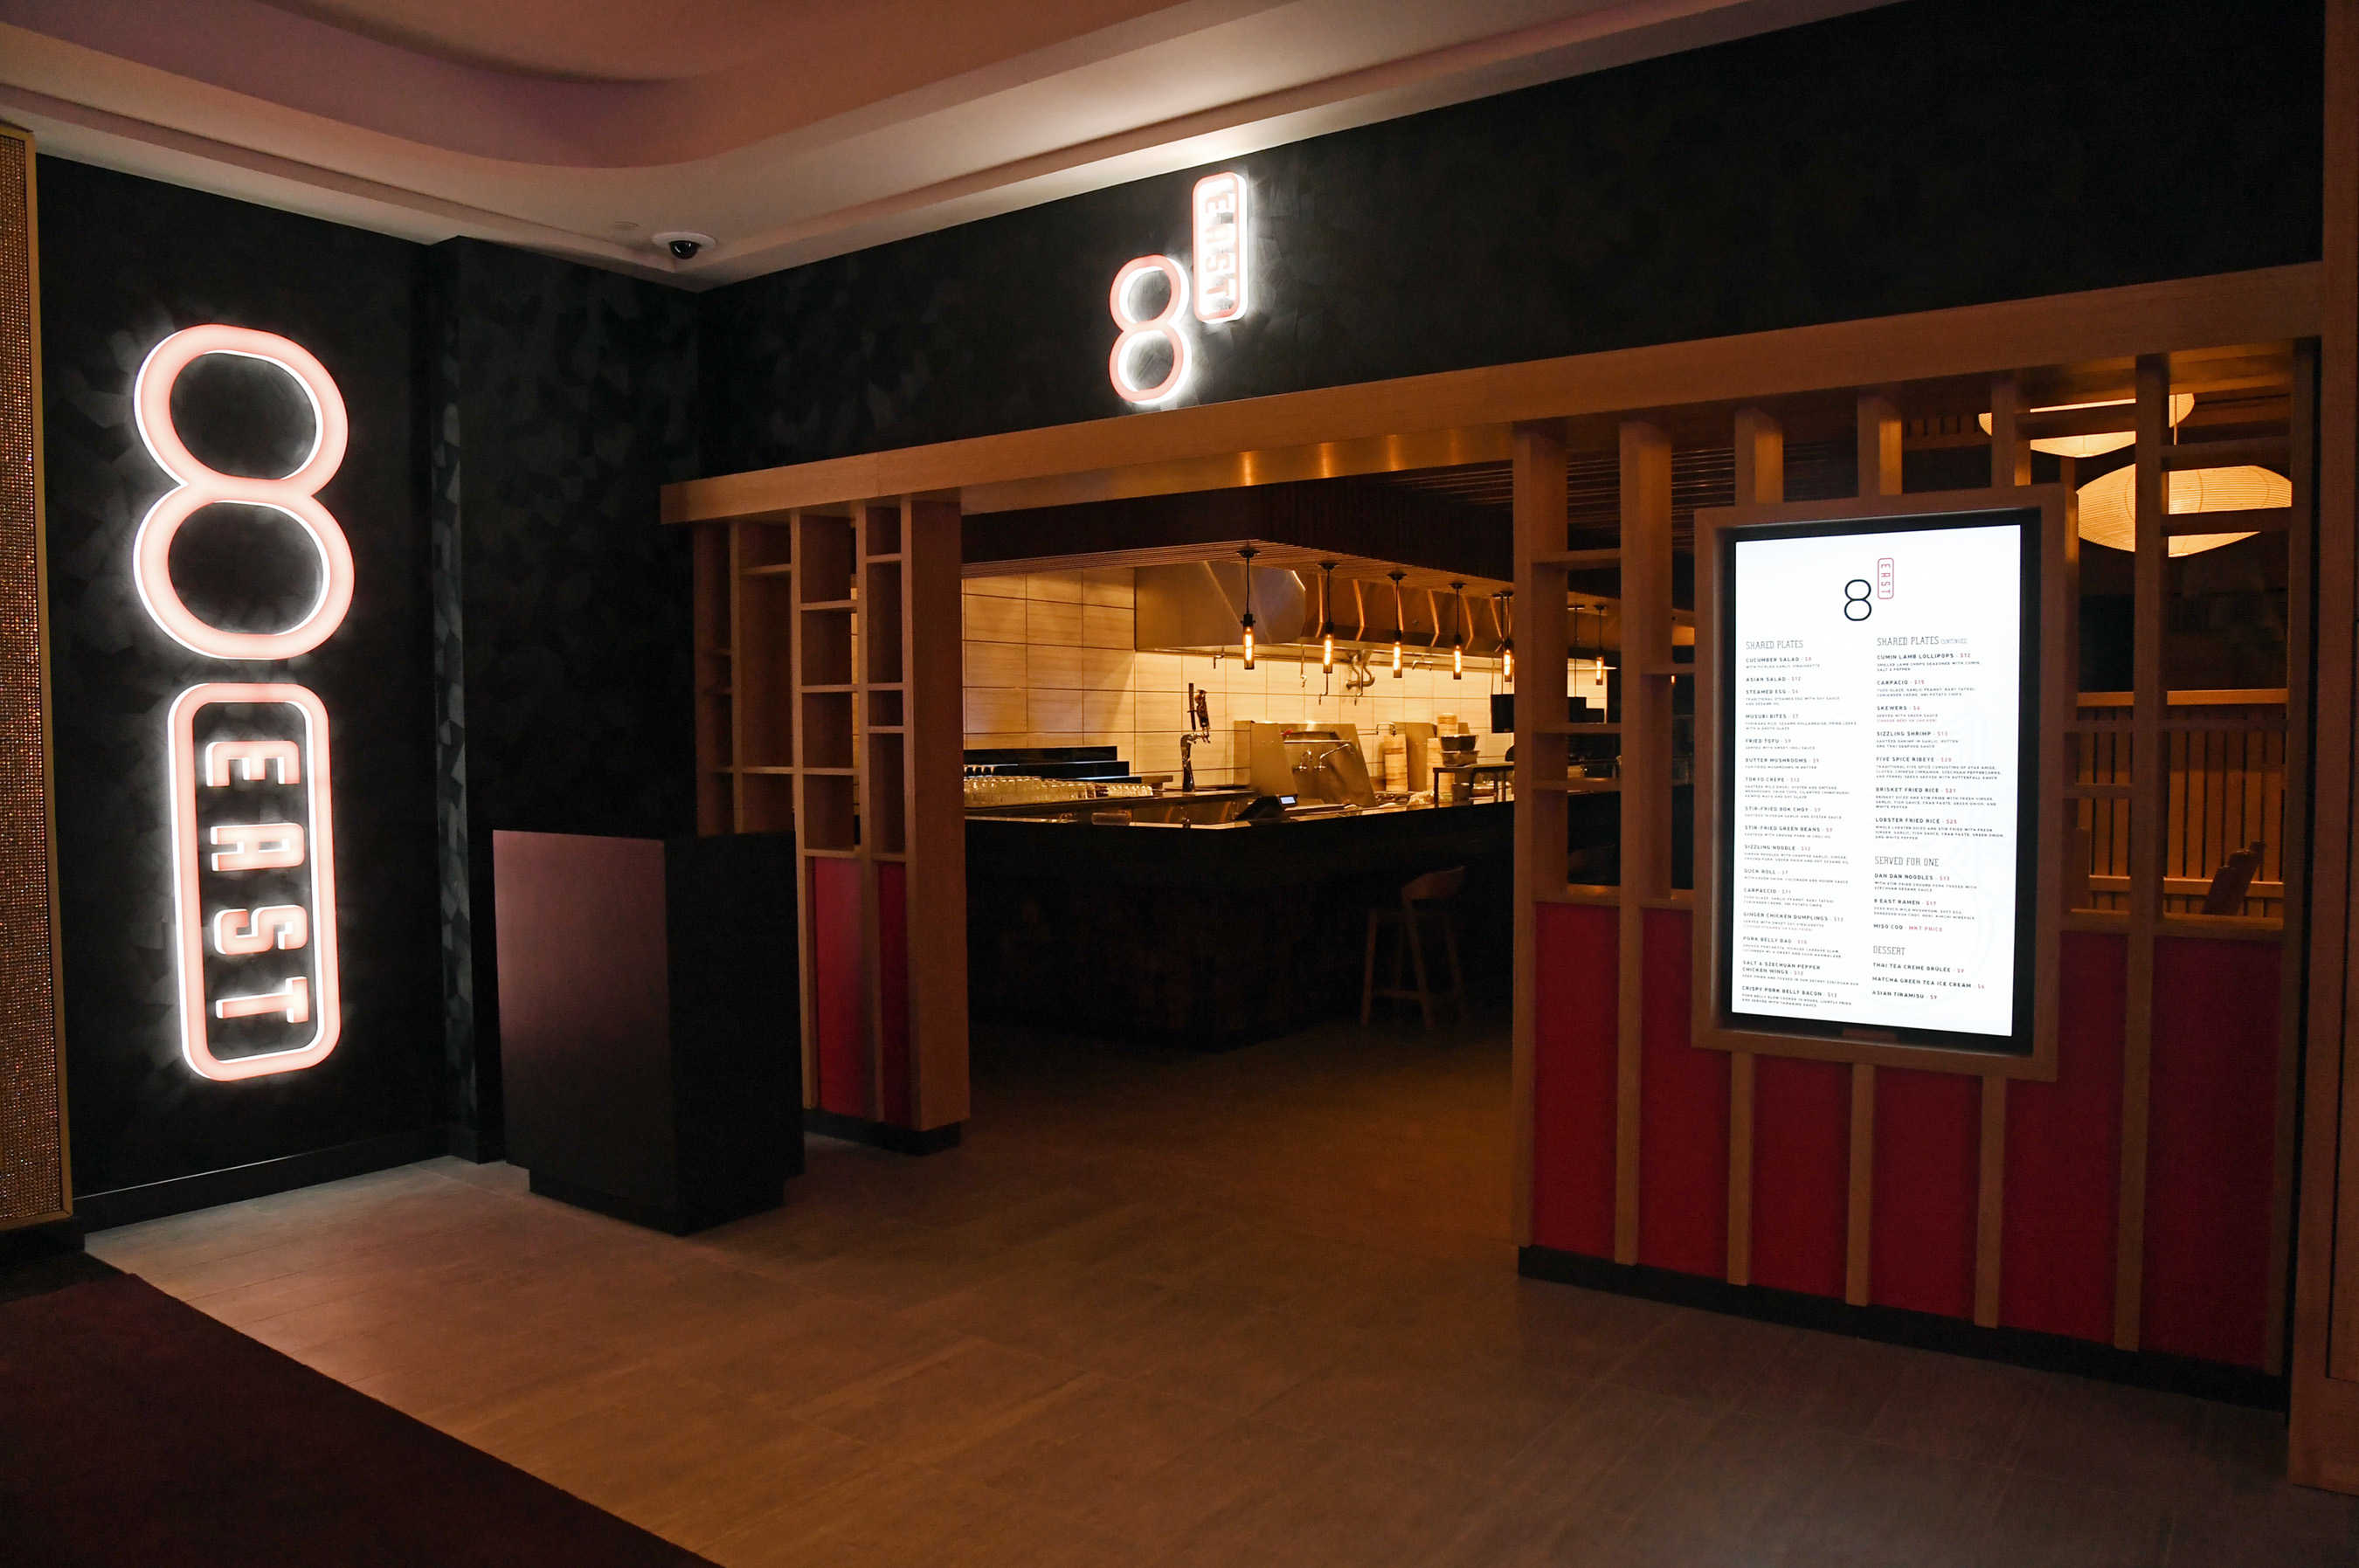 8 East is a Pan-Asian restaurant from Chef Dan Coughlin that brings a hip atmosphere and communal dining to Circa's casino floor.